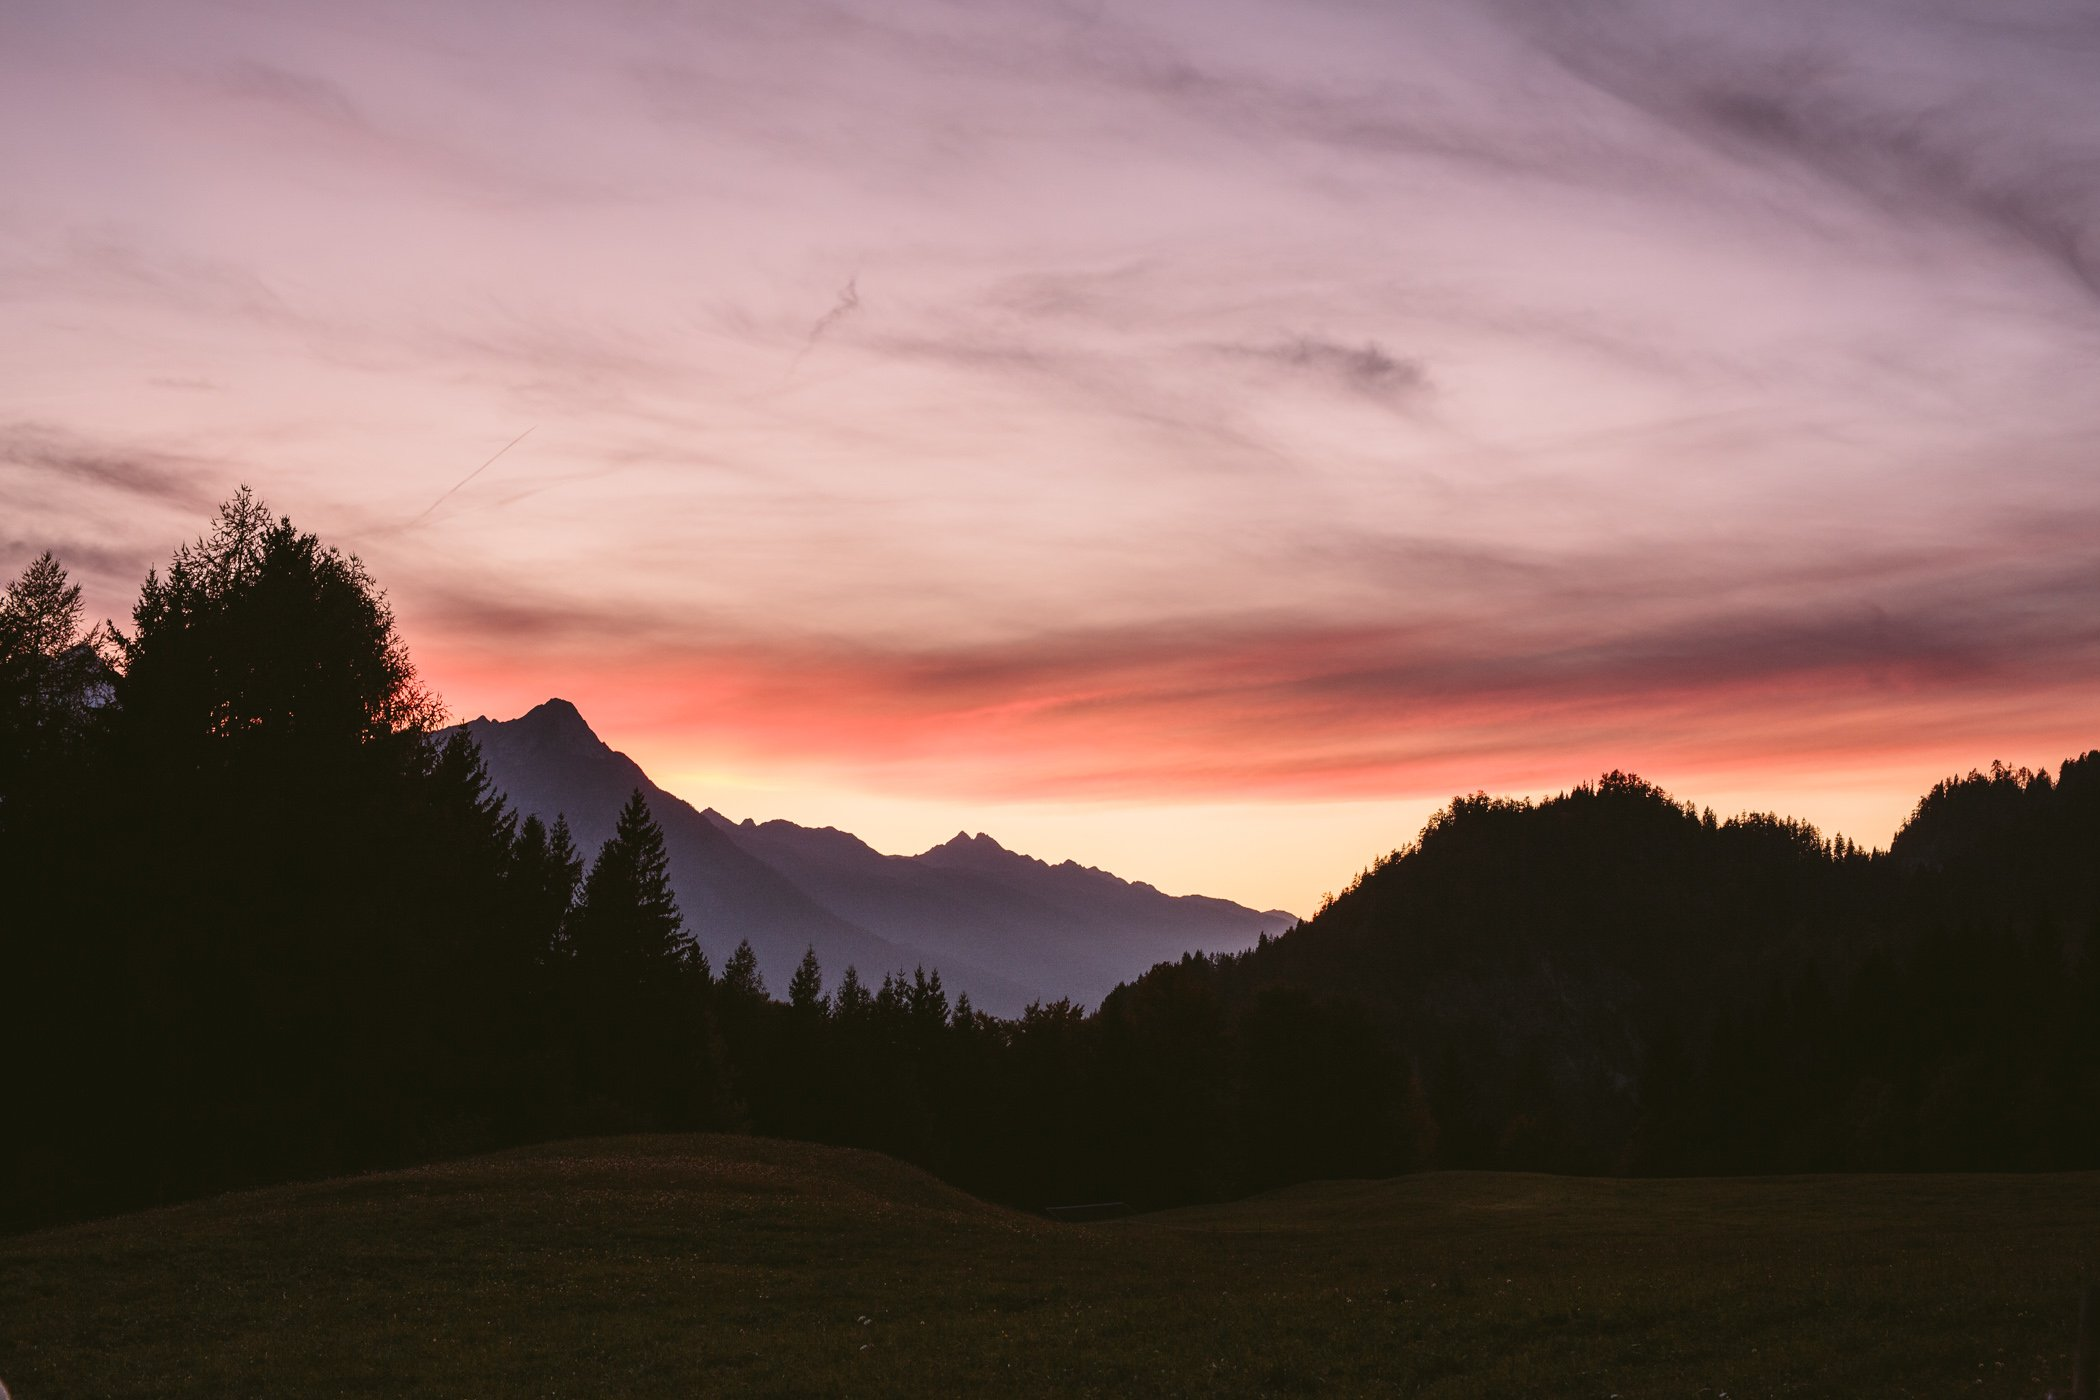 Alpine glow: Sunset in Carinthia's Slow Food Travel Region